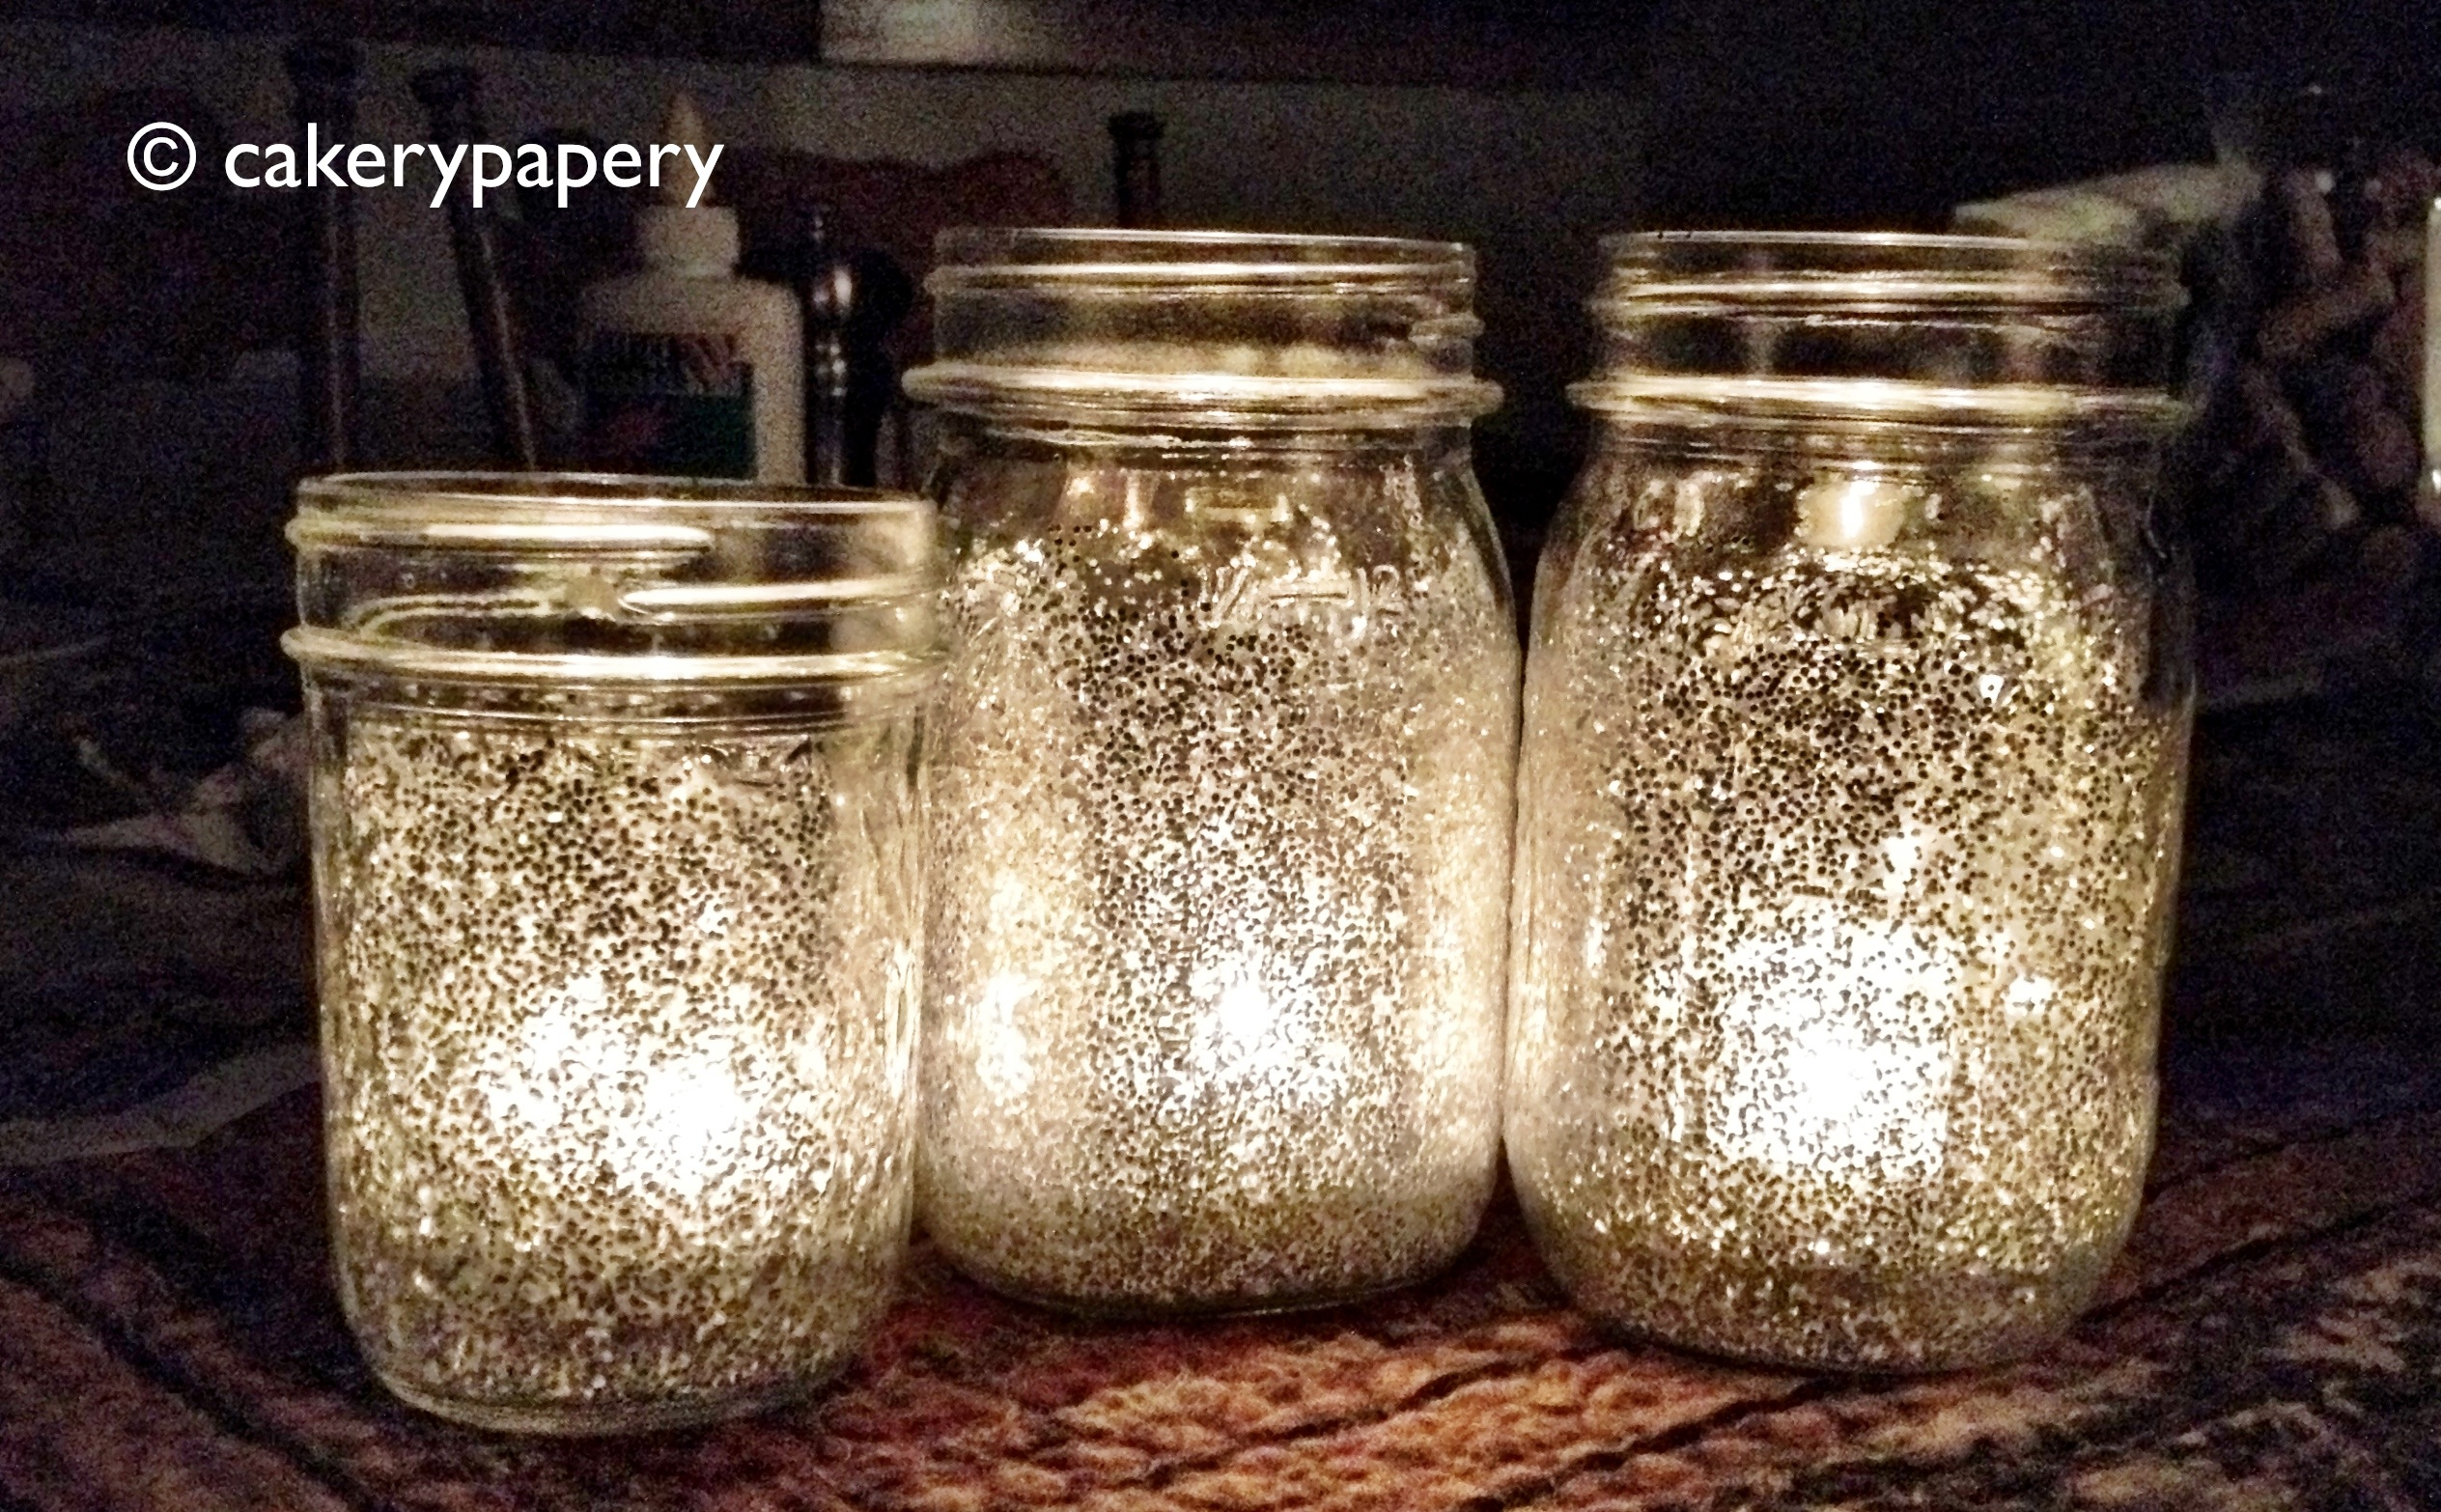 Festive Holiday Diy Glitter Mason Jar Candles Cakerypapery